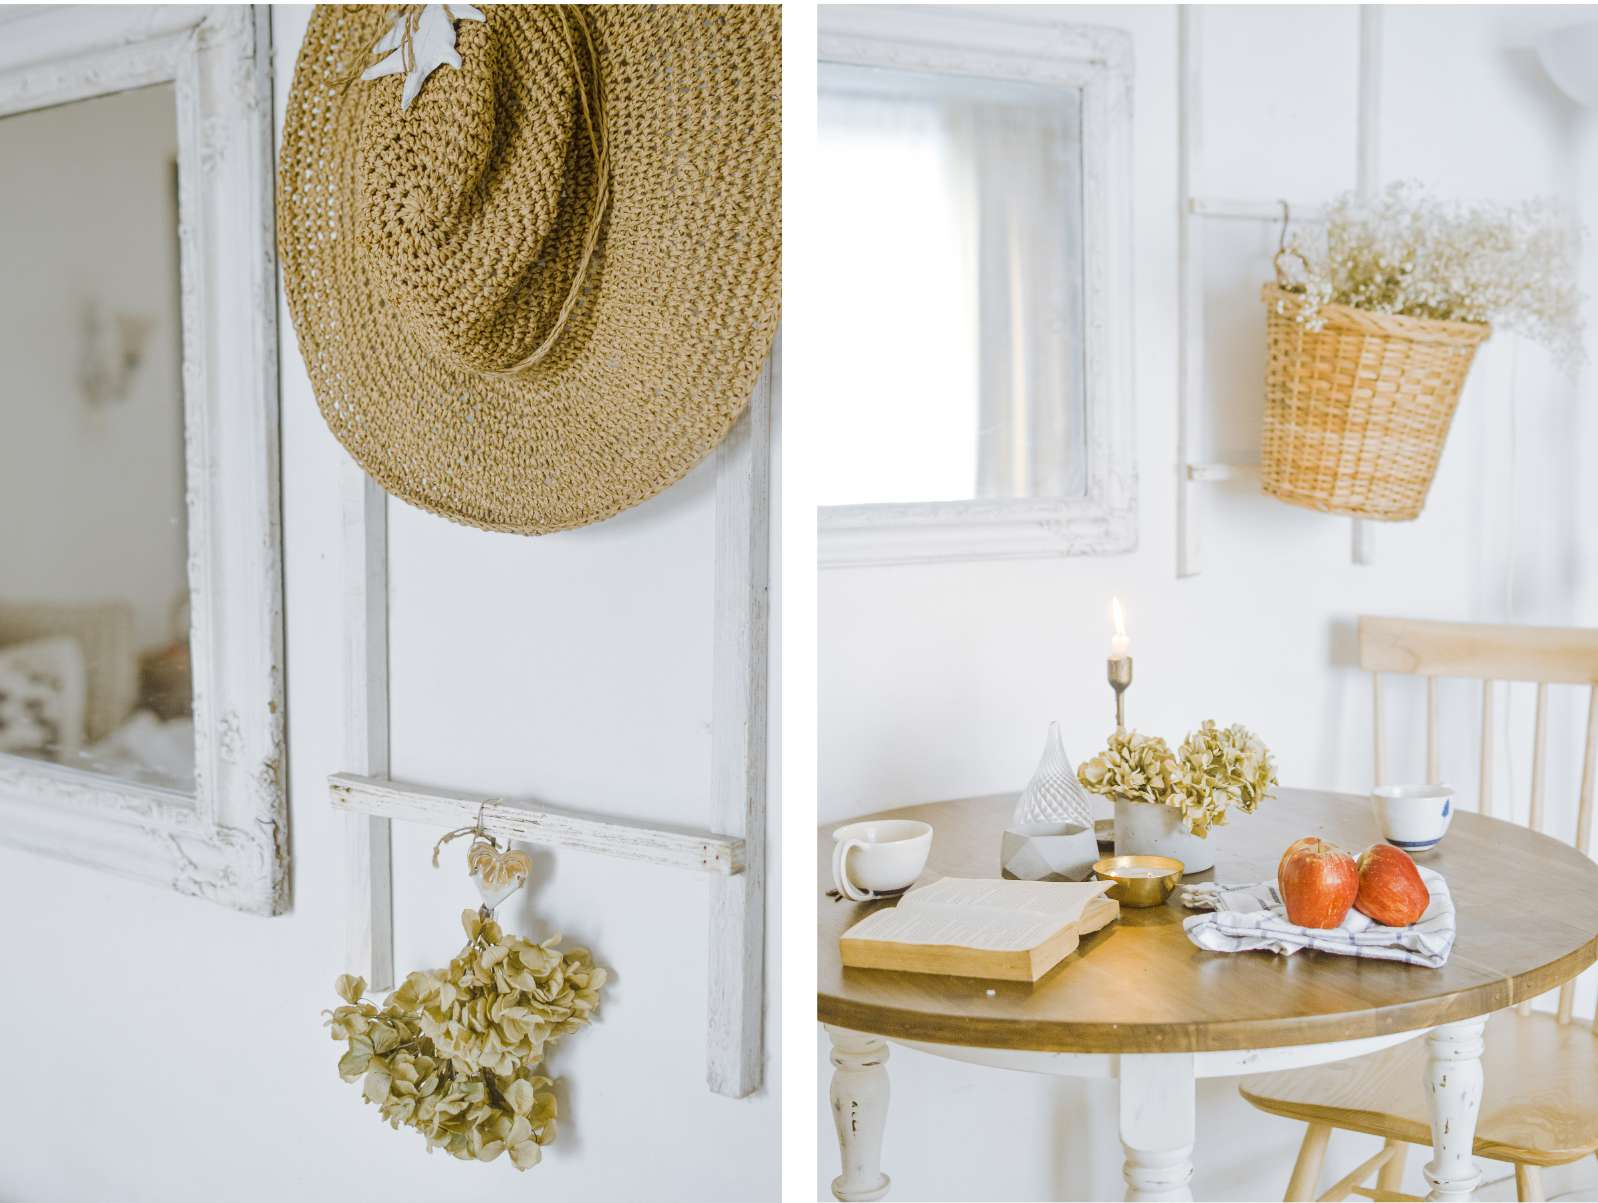 ladders on walls with decor hanging from them